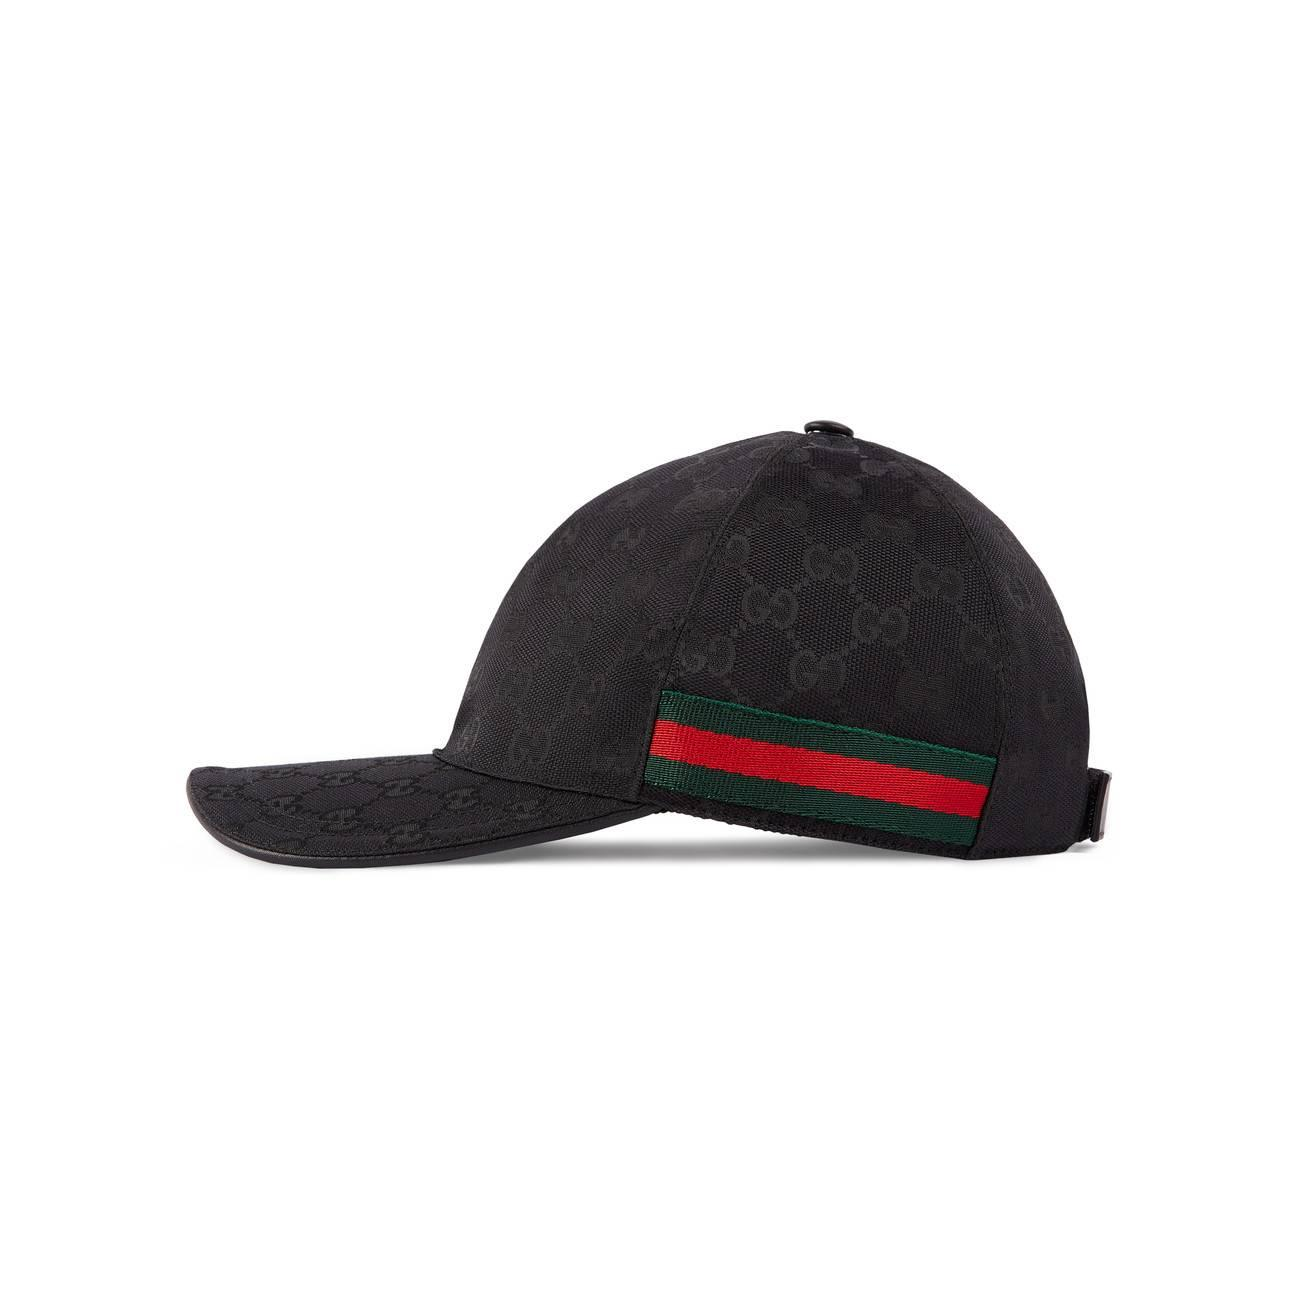 1e84aaa3afe Gucci - Black Original GG Canvas Baseball Hat With Web - Lyst. View  fullscreen